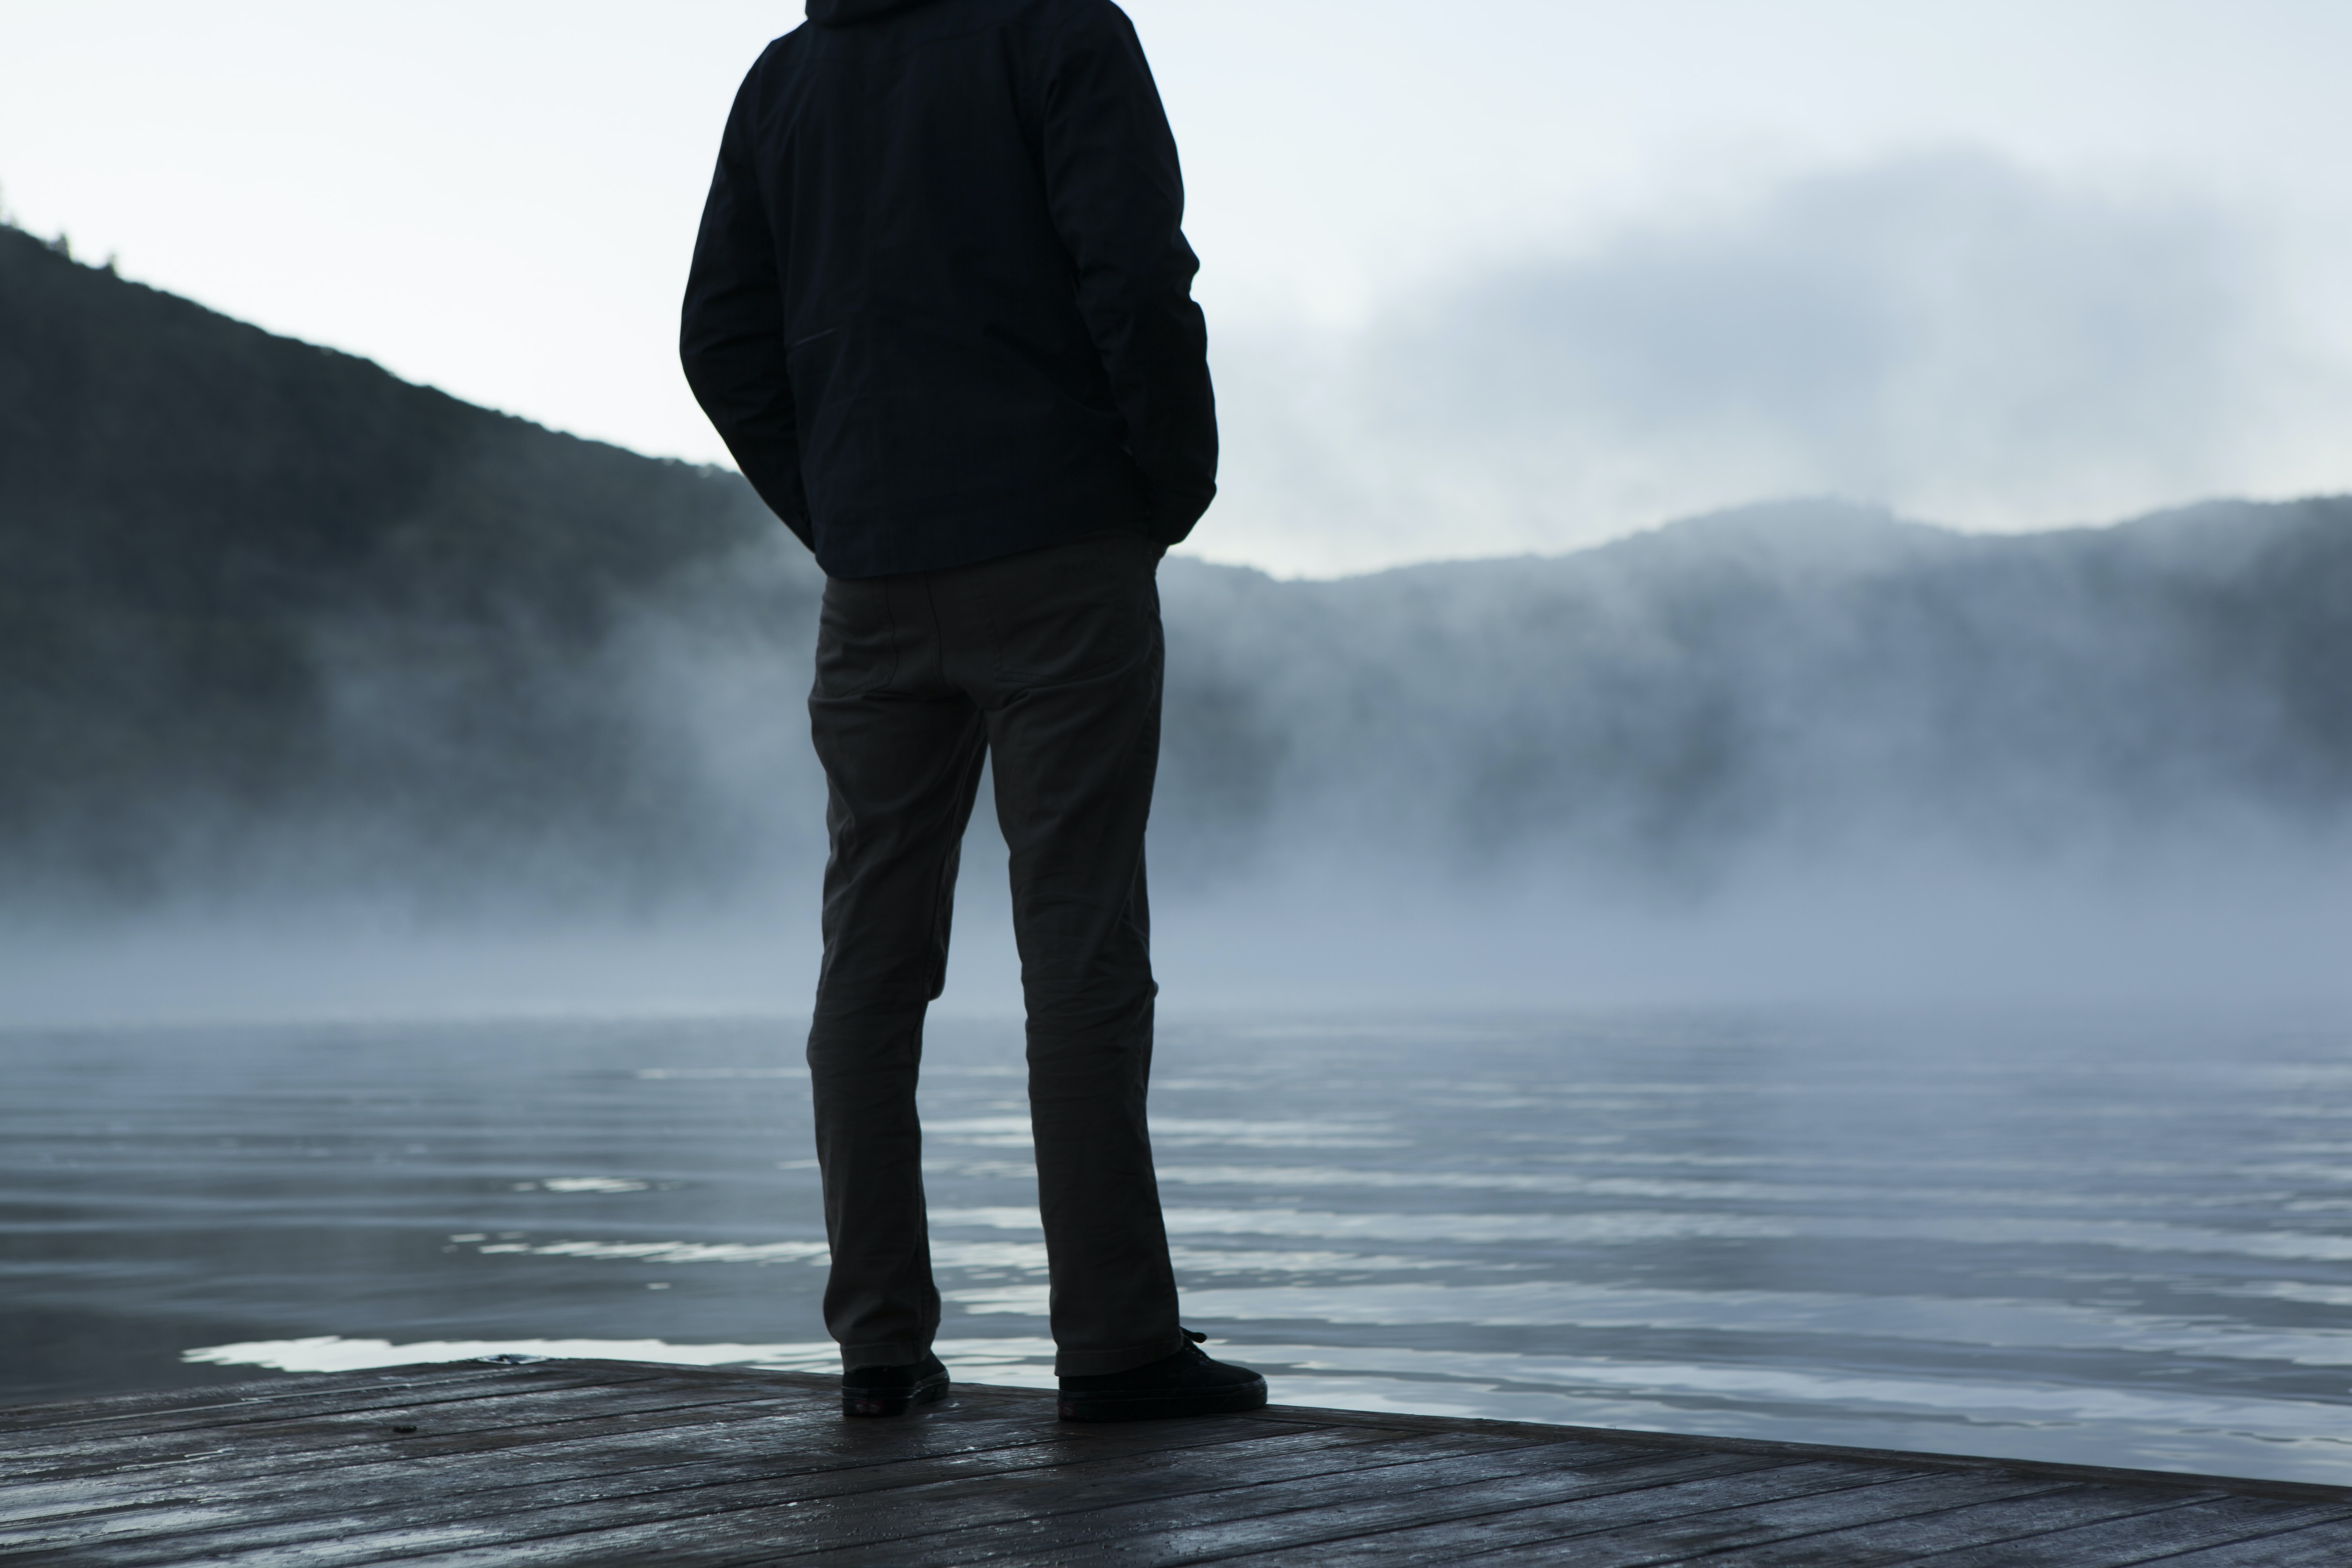 Being a man is like walking on thin ice.